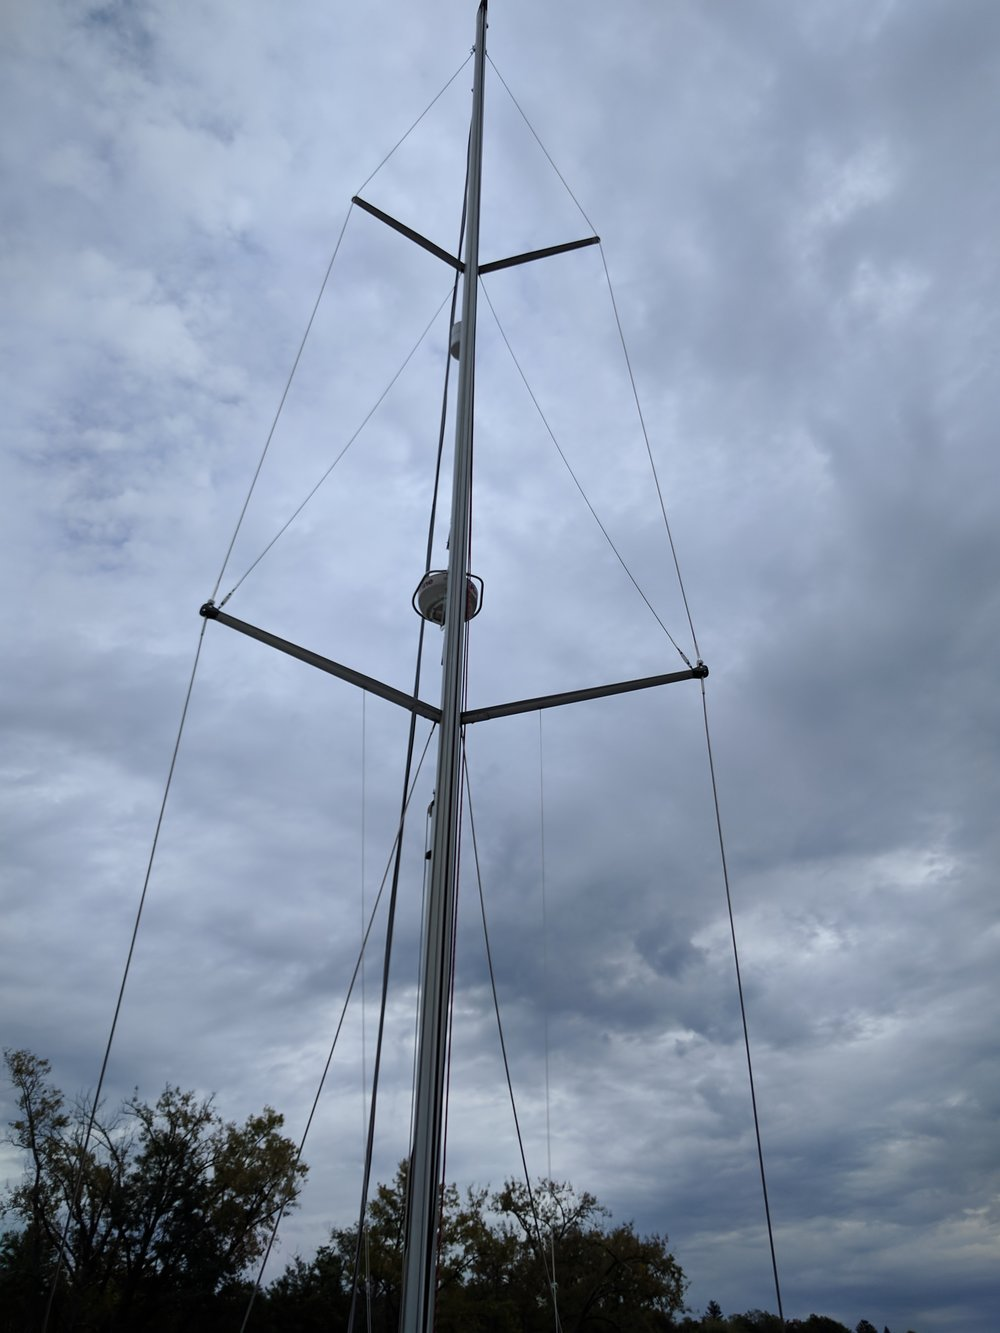 The mast is hoisted back in place.